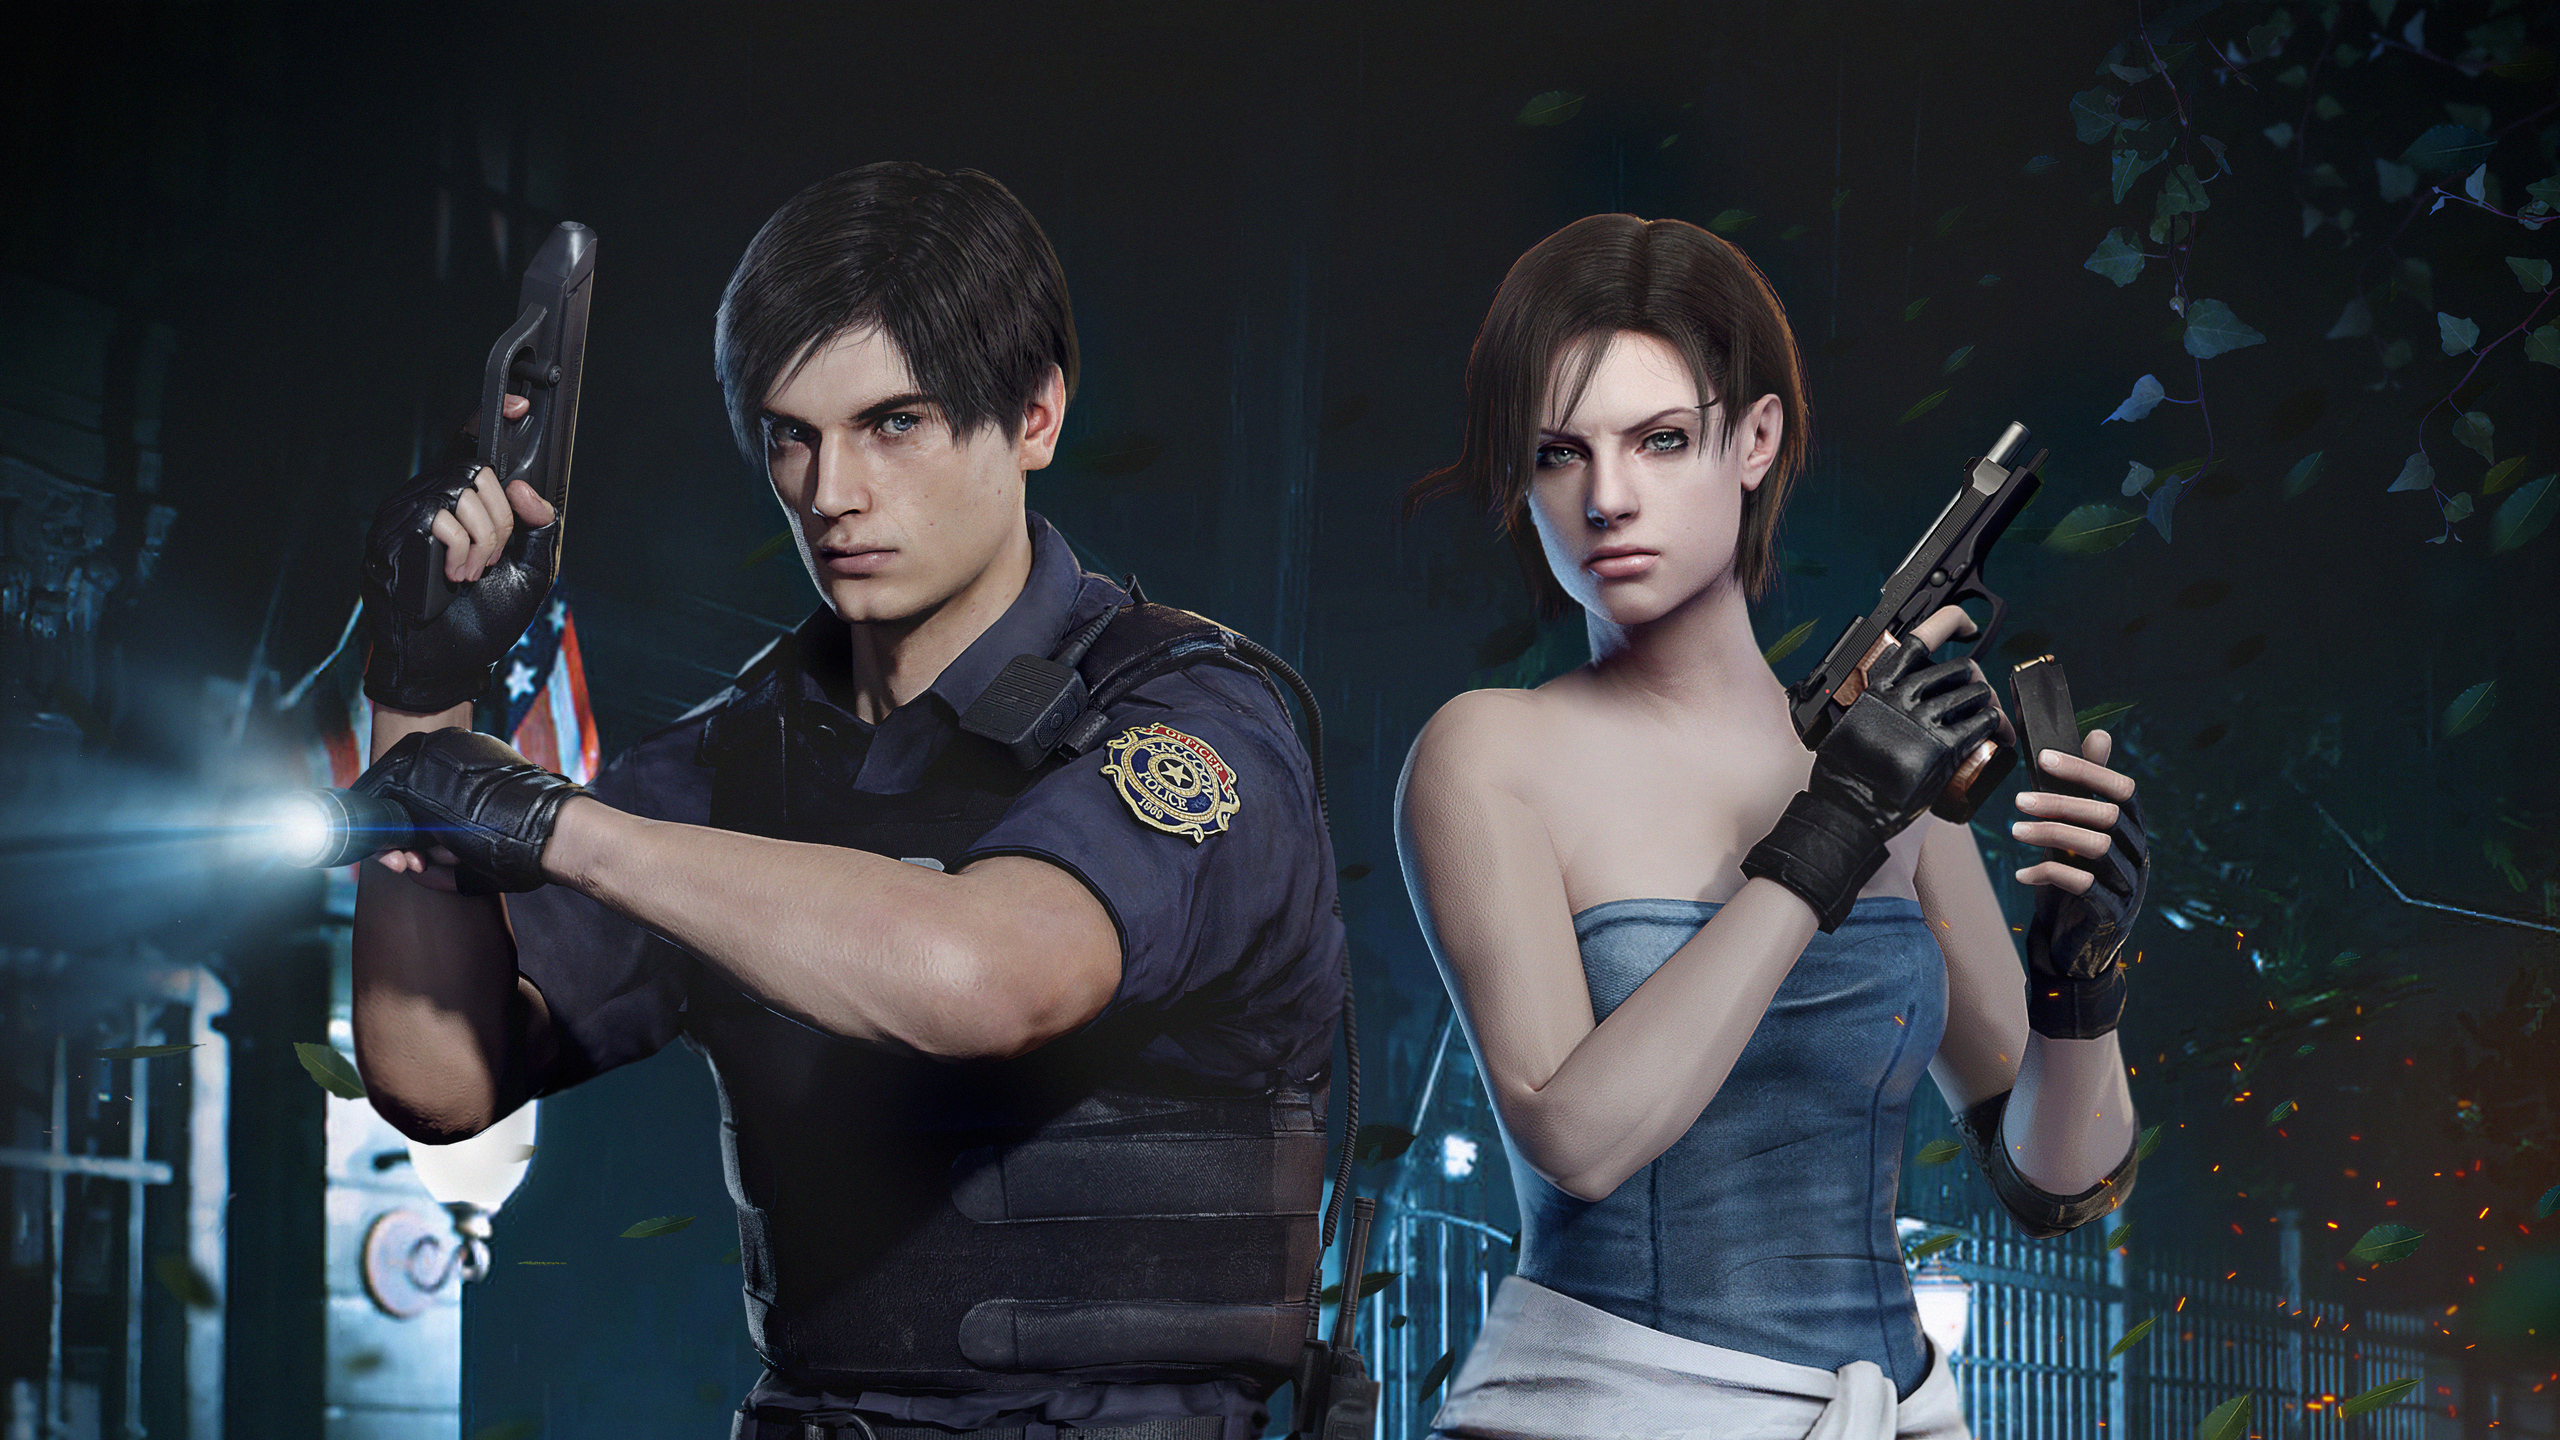 2560x1440 Resident Evil Leon X Jil 4k 1440p Resolution Hd 4k